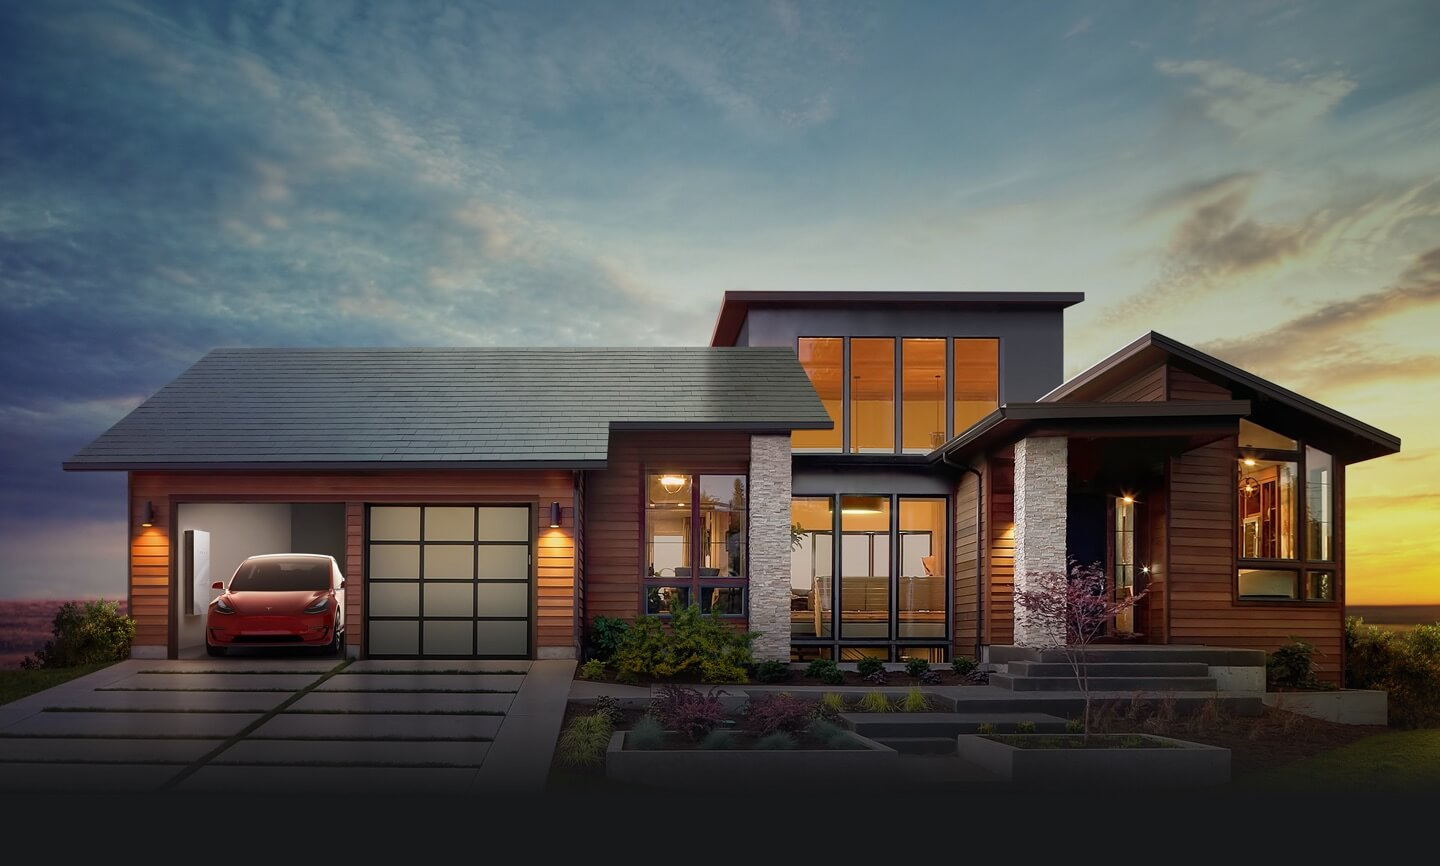 Elon Musk claims Tesla's solar roof will be competitive even without the energy it produces